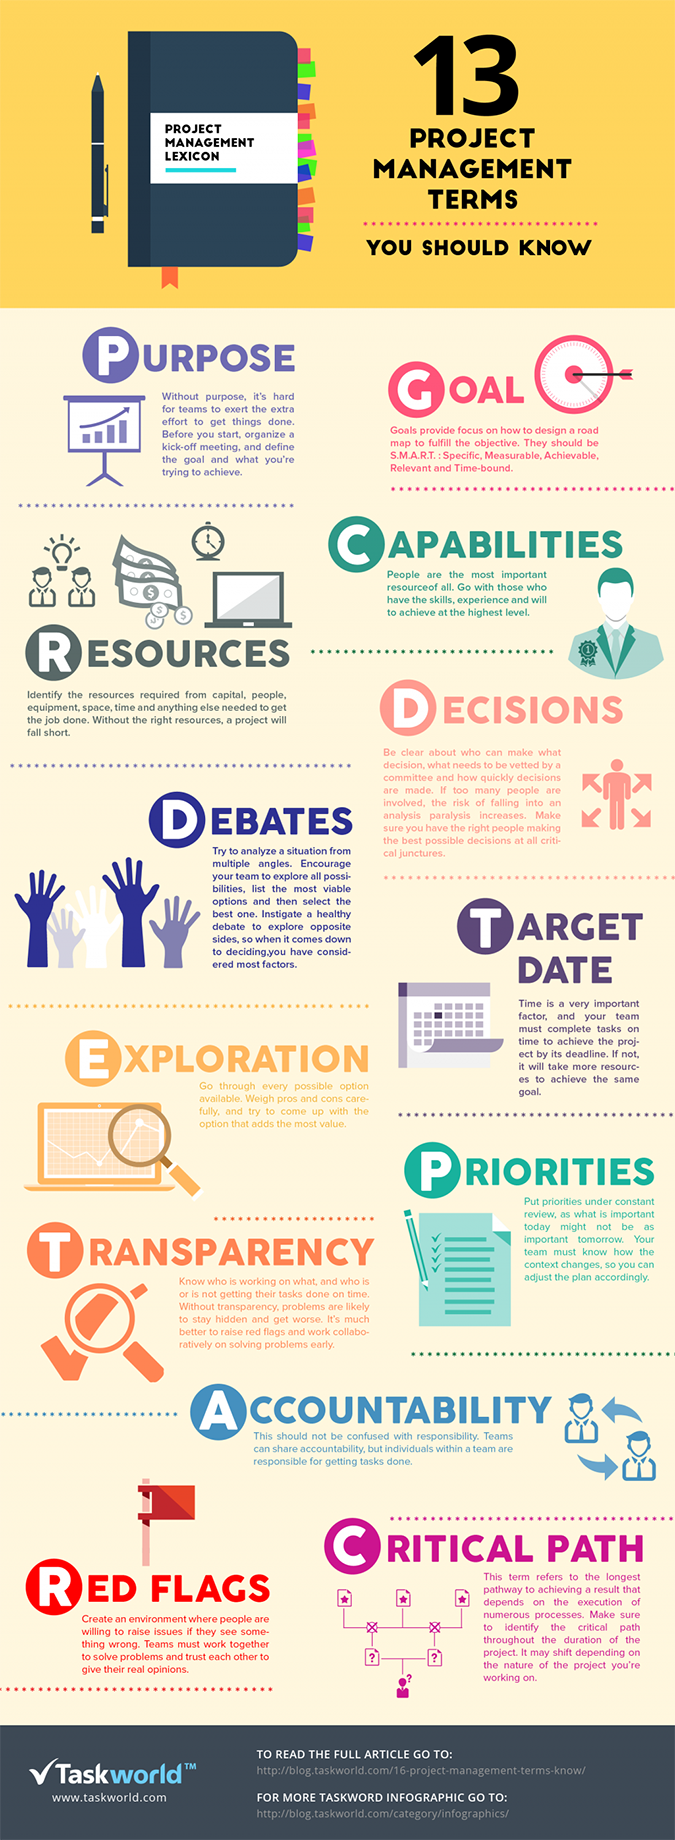 13-Project-Management-Terms-You-Should-Know.png